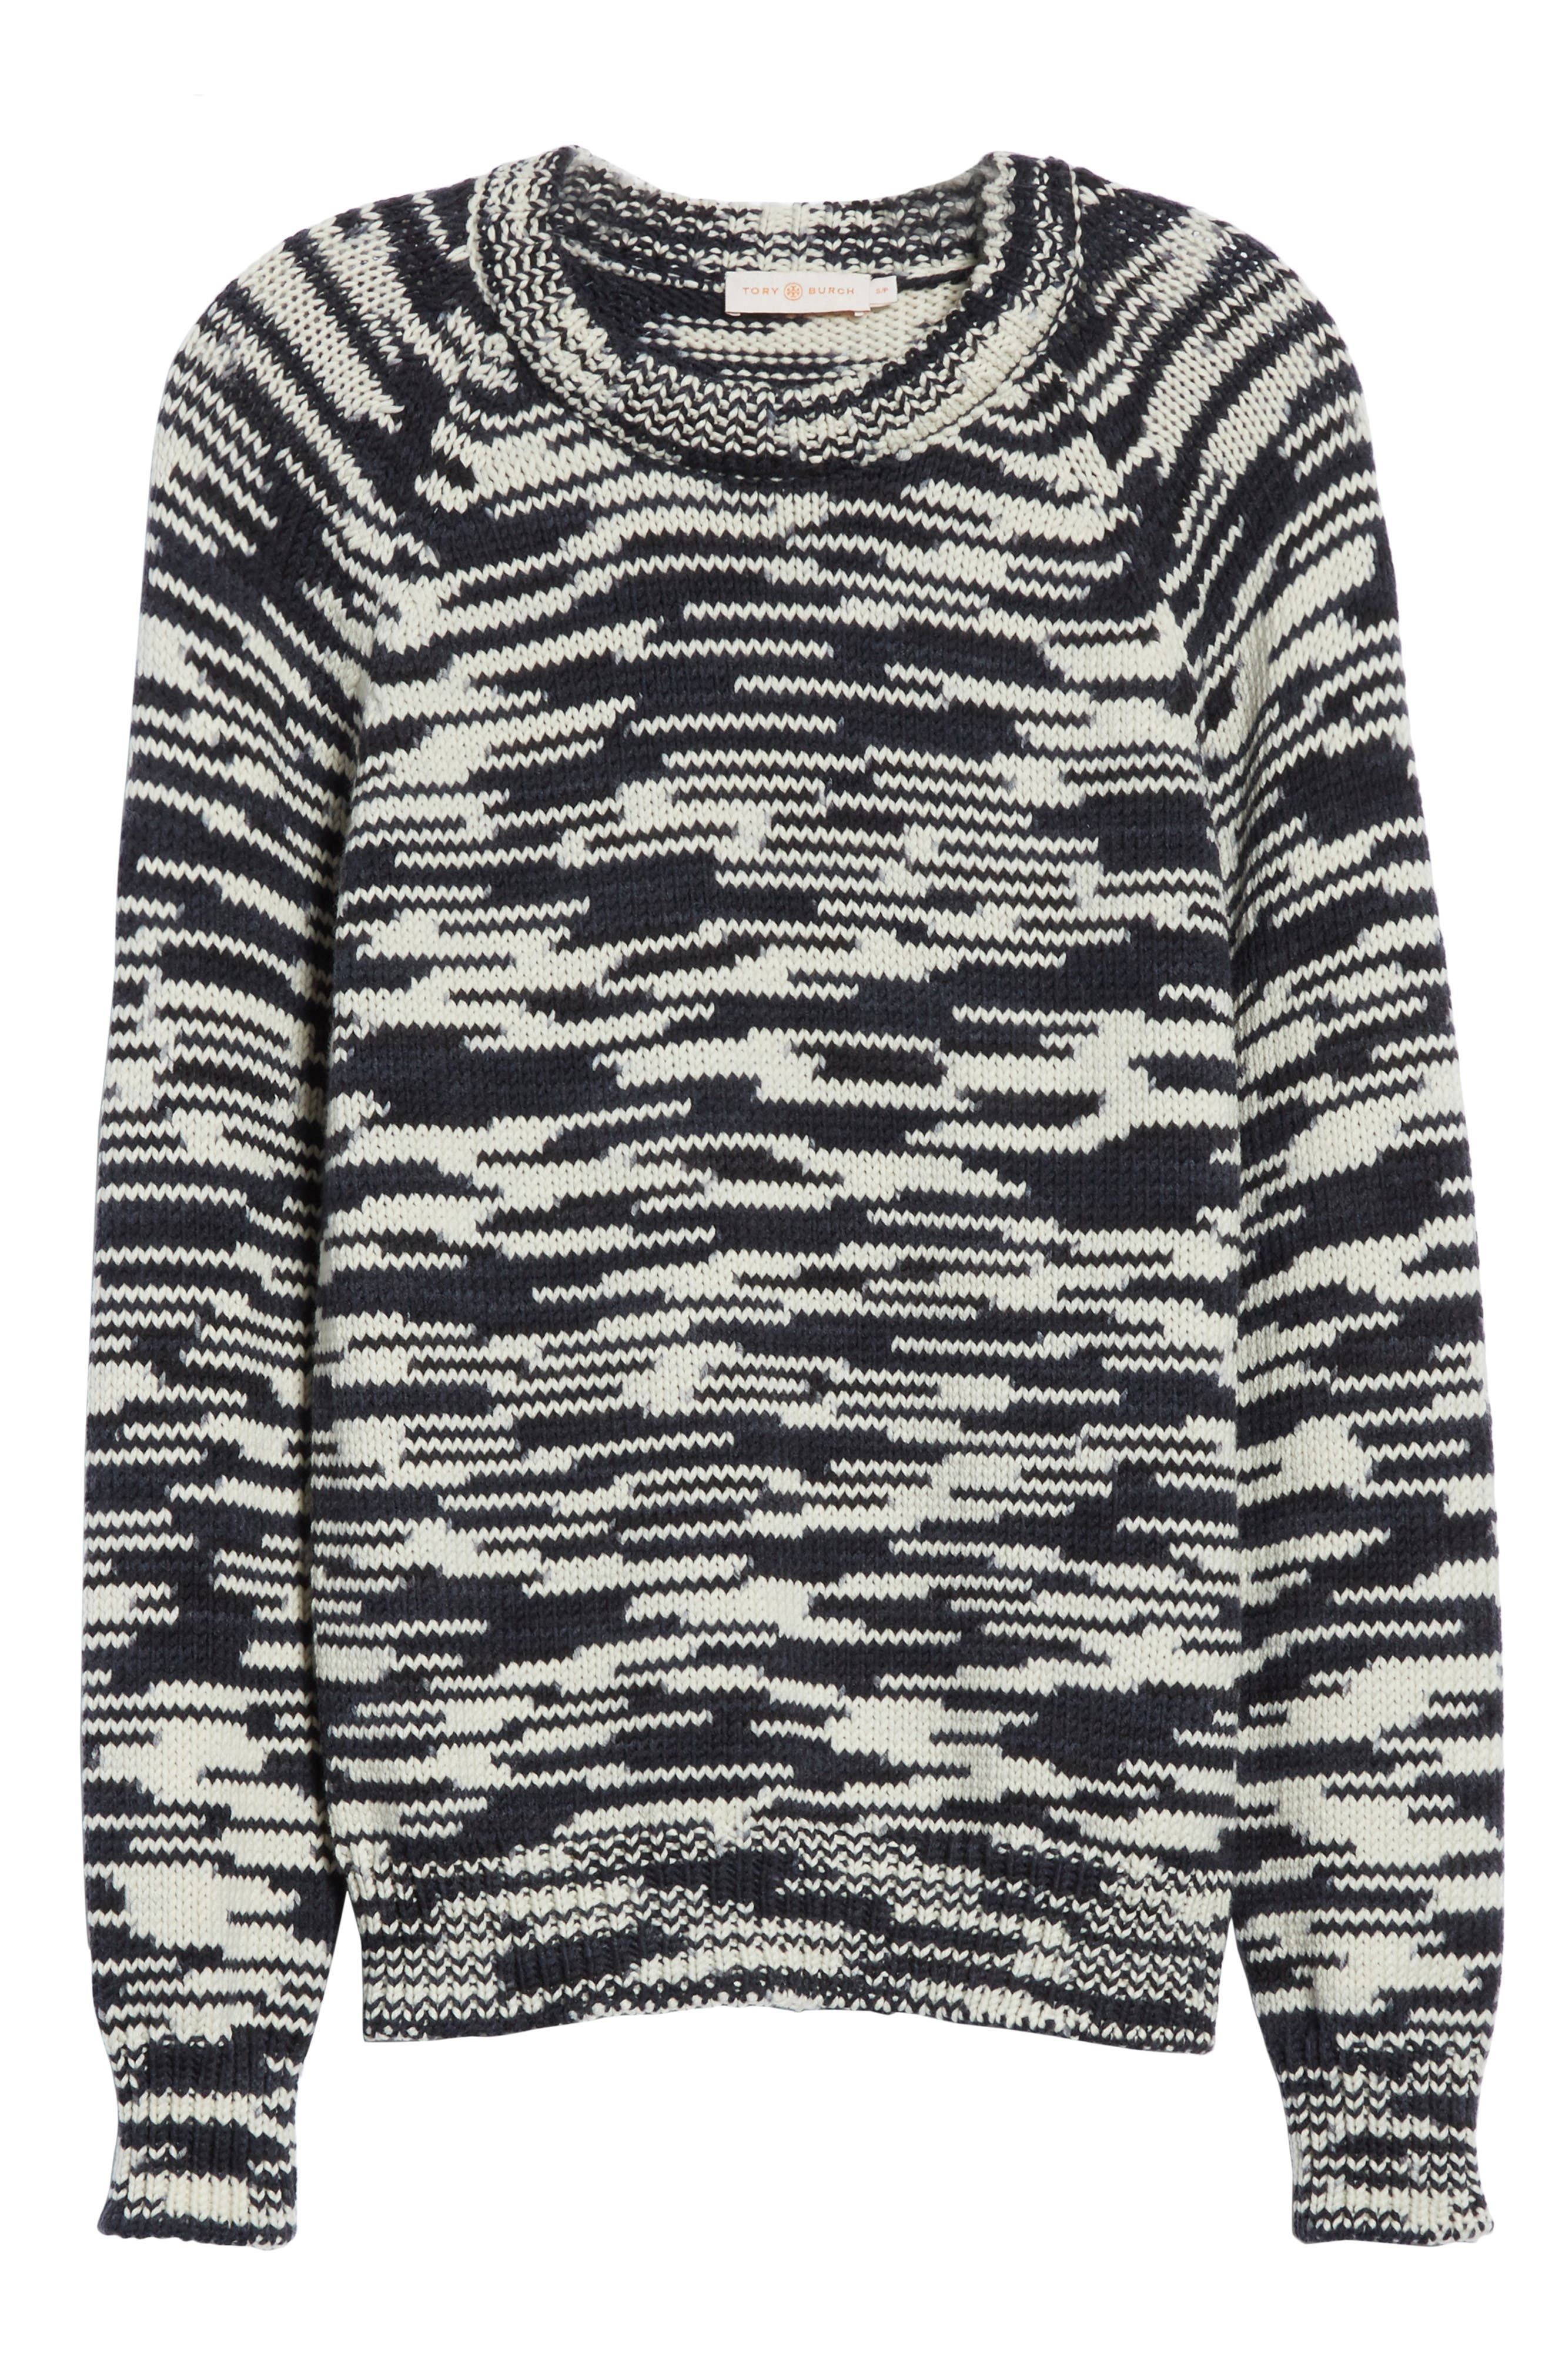 Olivia Merino Wool Sweater,                             Alternate thumbnail 6, color,                             408